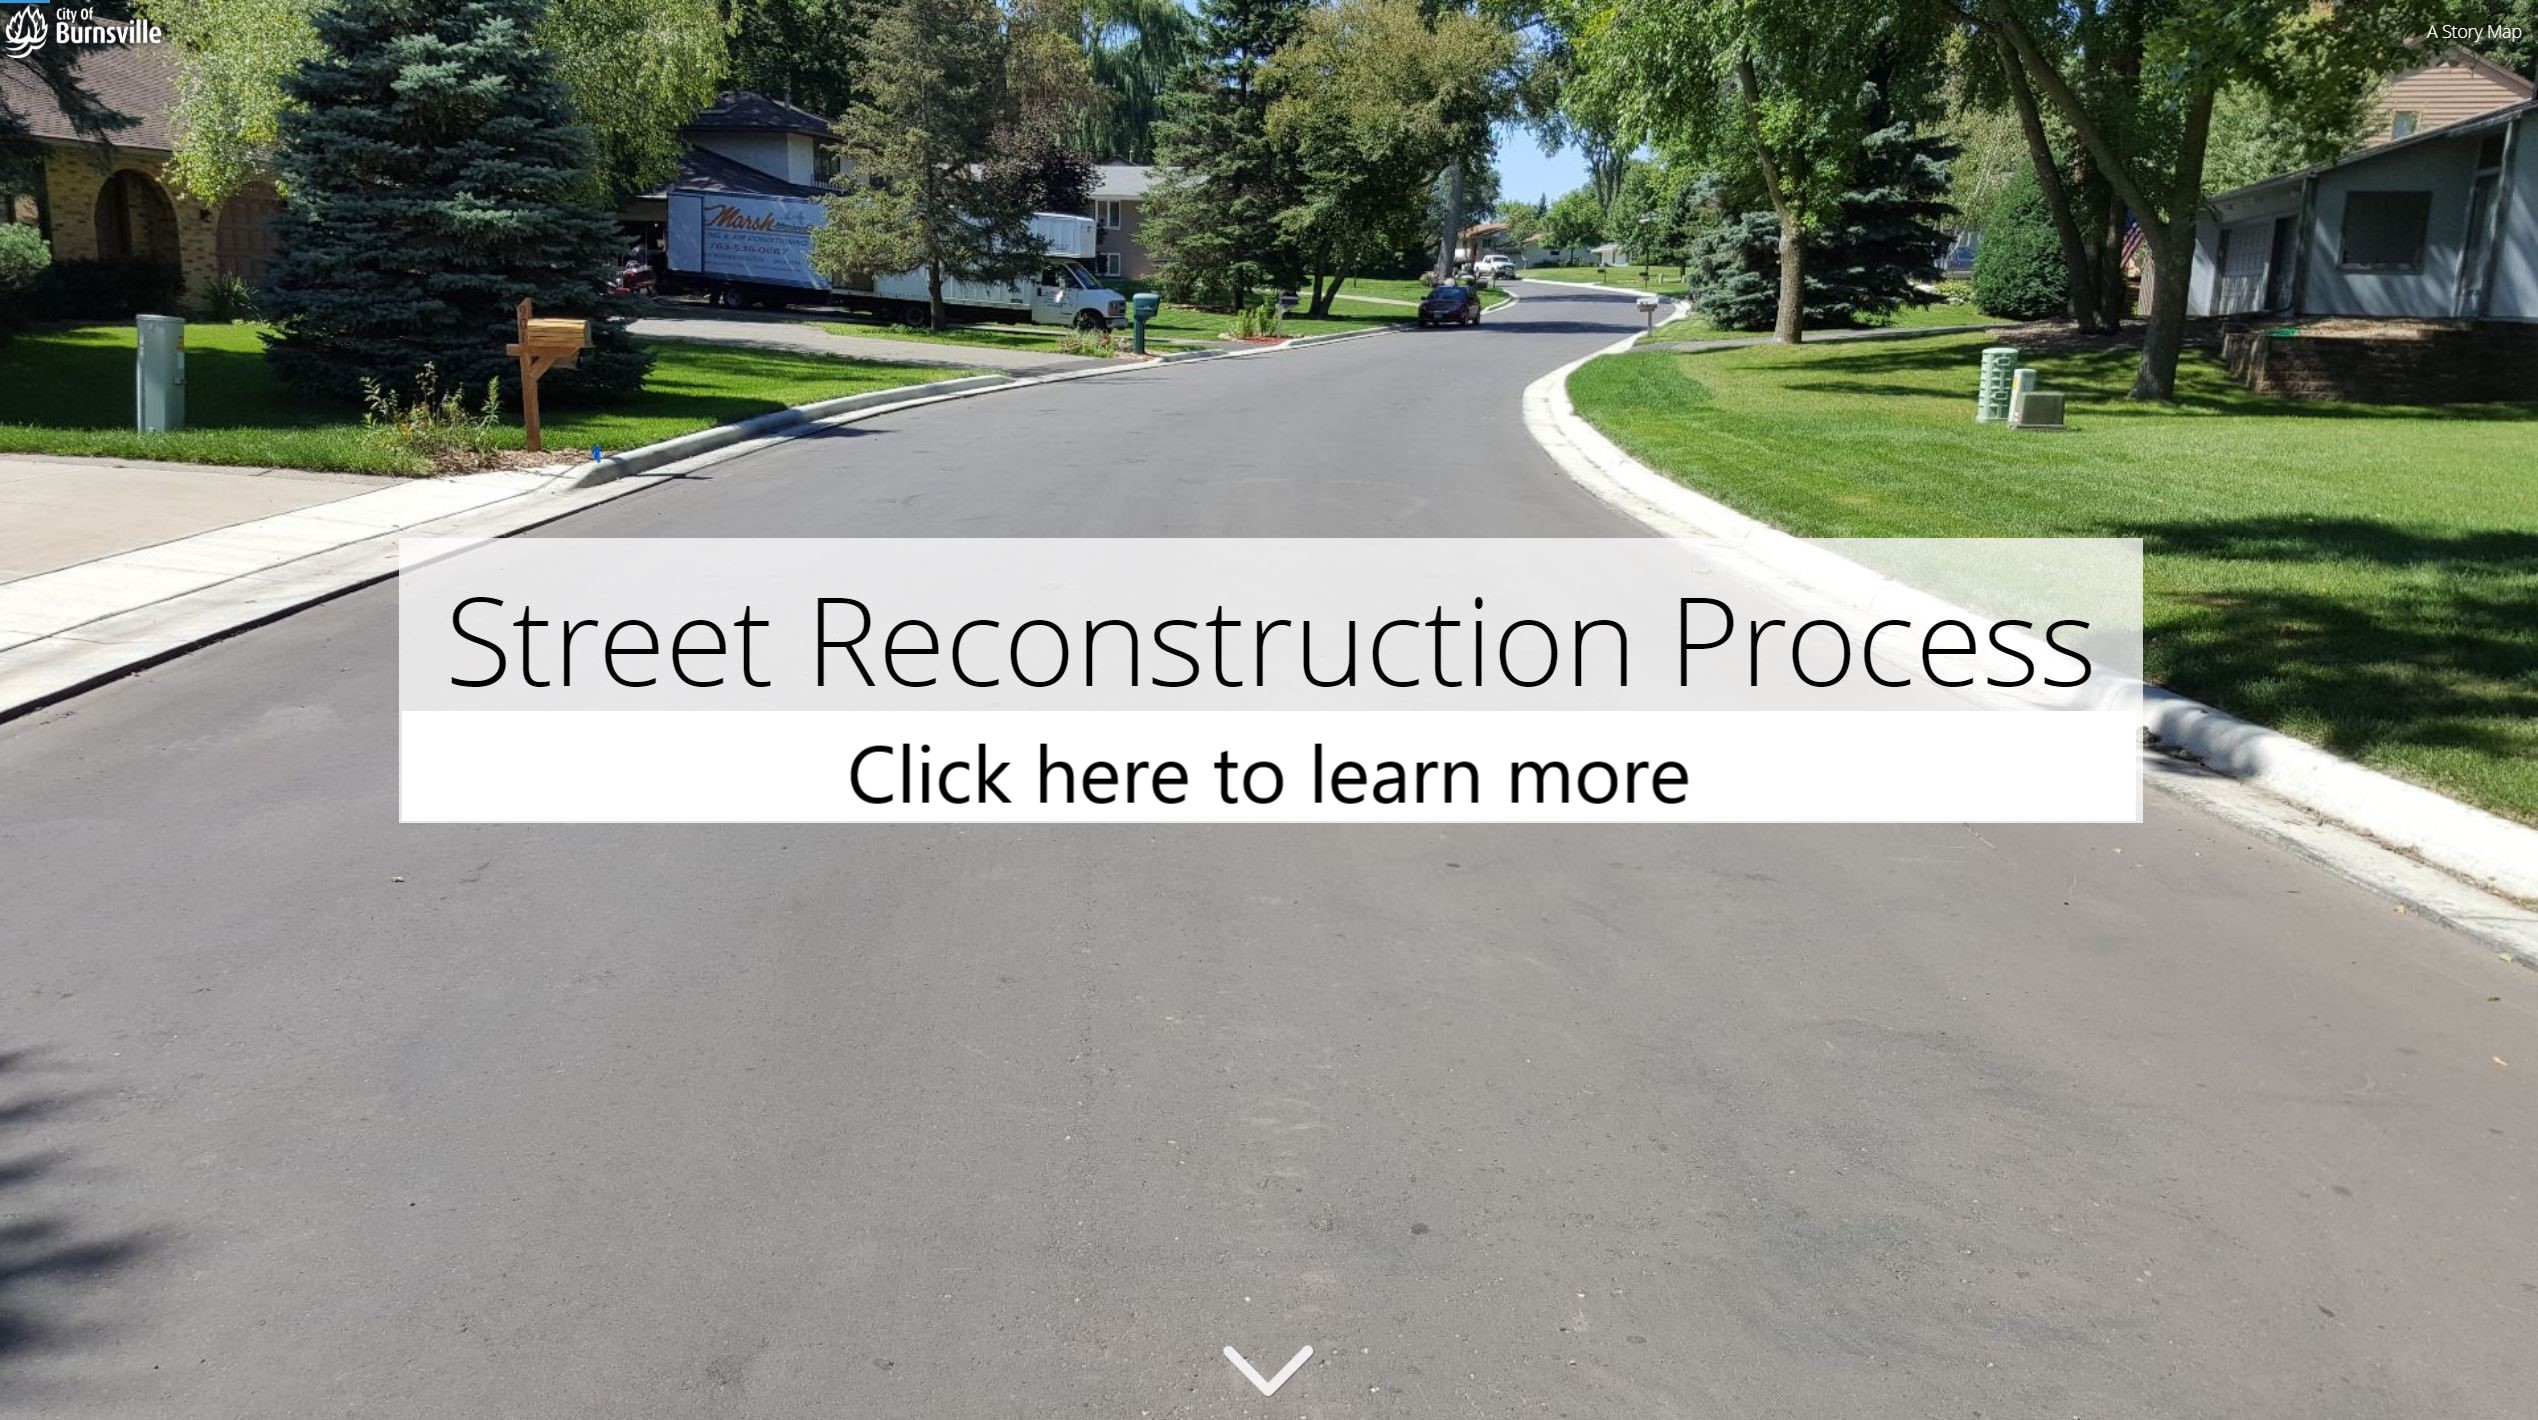 Click here to learn more about the street reconstruction process